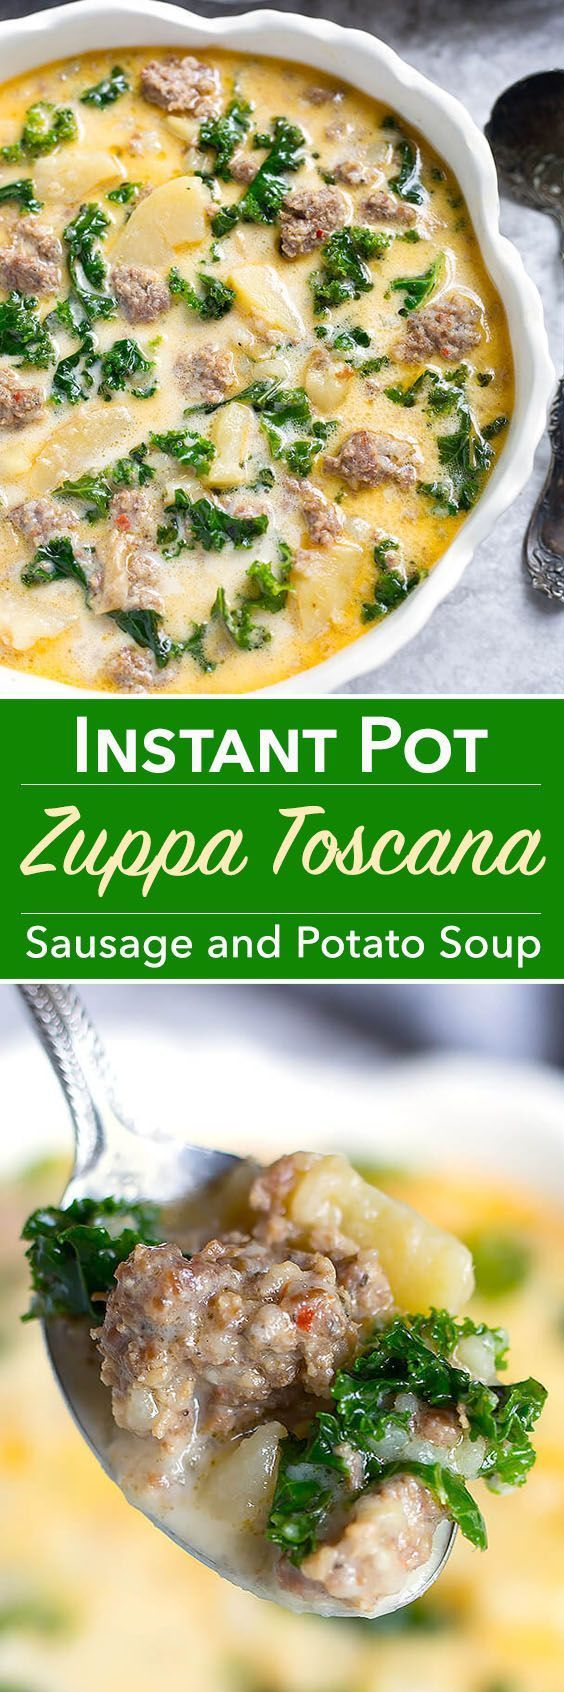 Instant Pot Zuppa Toscana (Sausage and Potato Soup) is hearty and full of rich